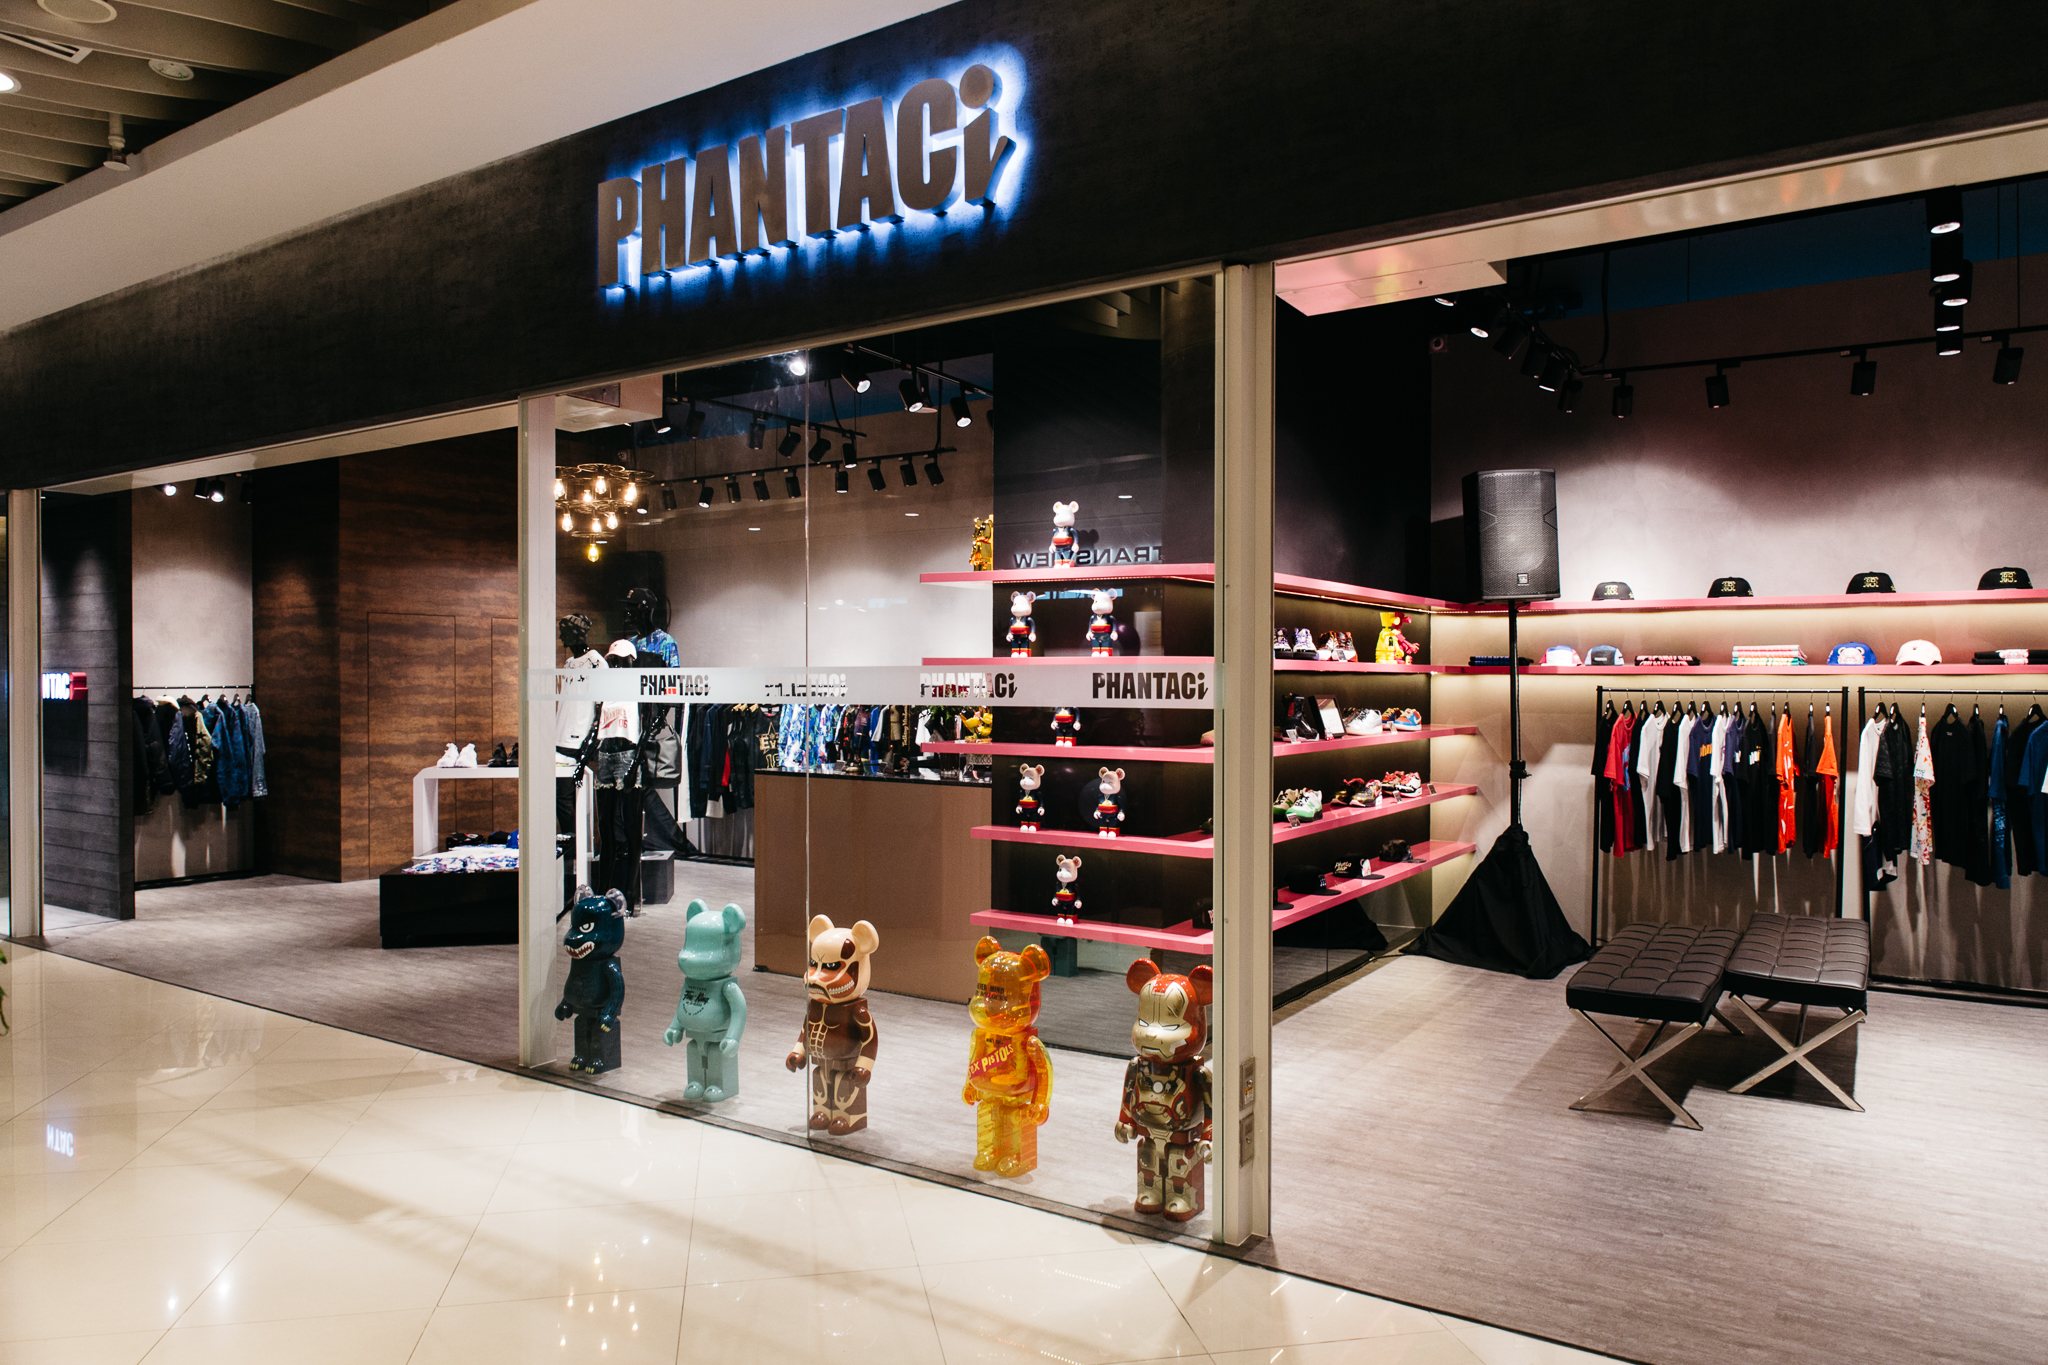 Jay Chou's streetwear boutique PHANTACi opens its doors in Singapore